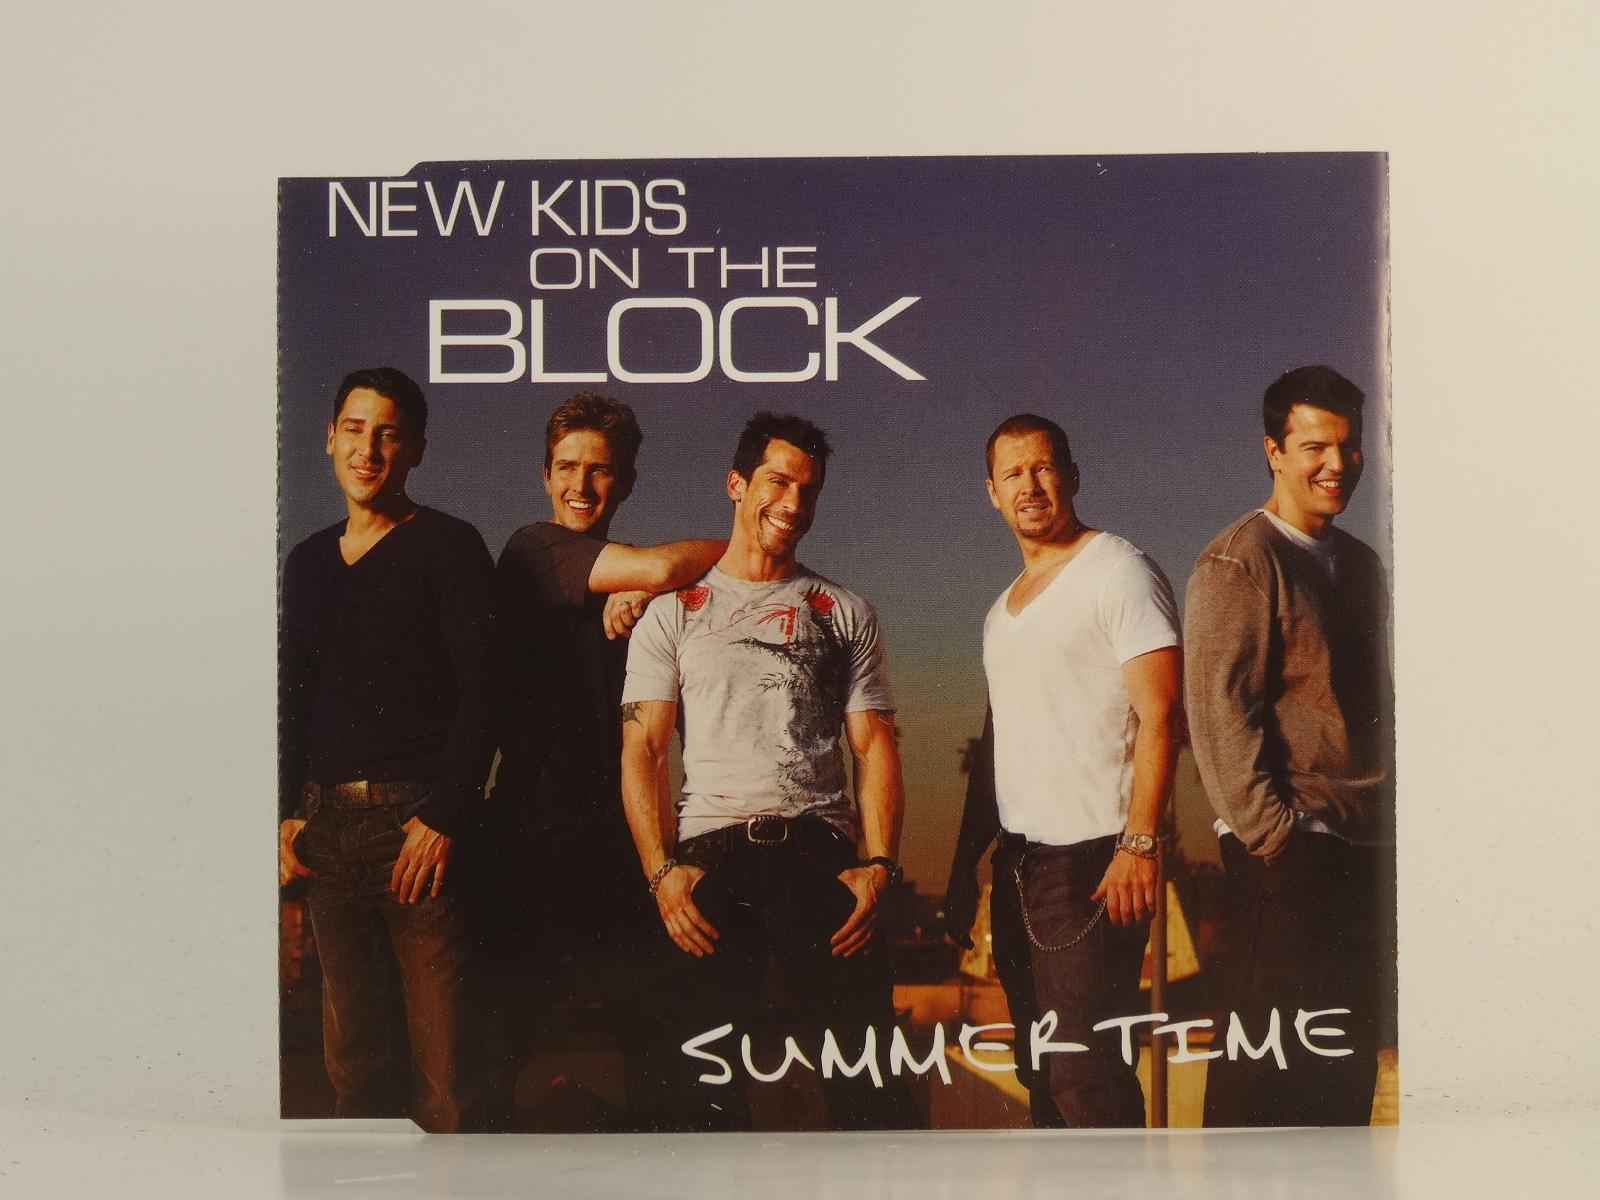 NEW-KIDS-ON-THE-BLOCK-SUMMER-TIME-EX-EX-1-Track-Promo-CD-Single-Picture-Sle